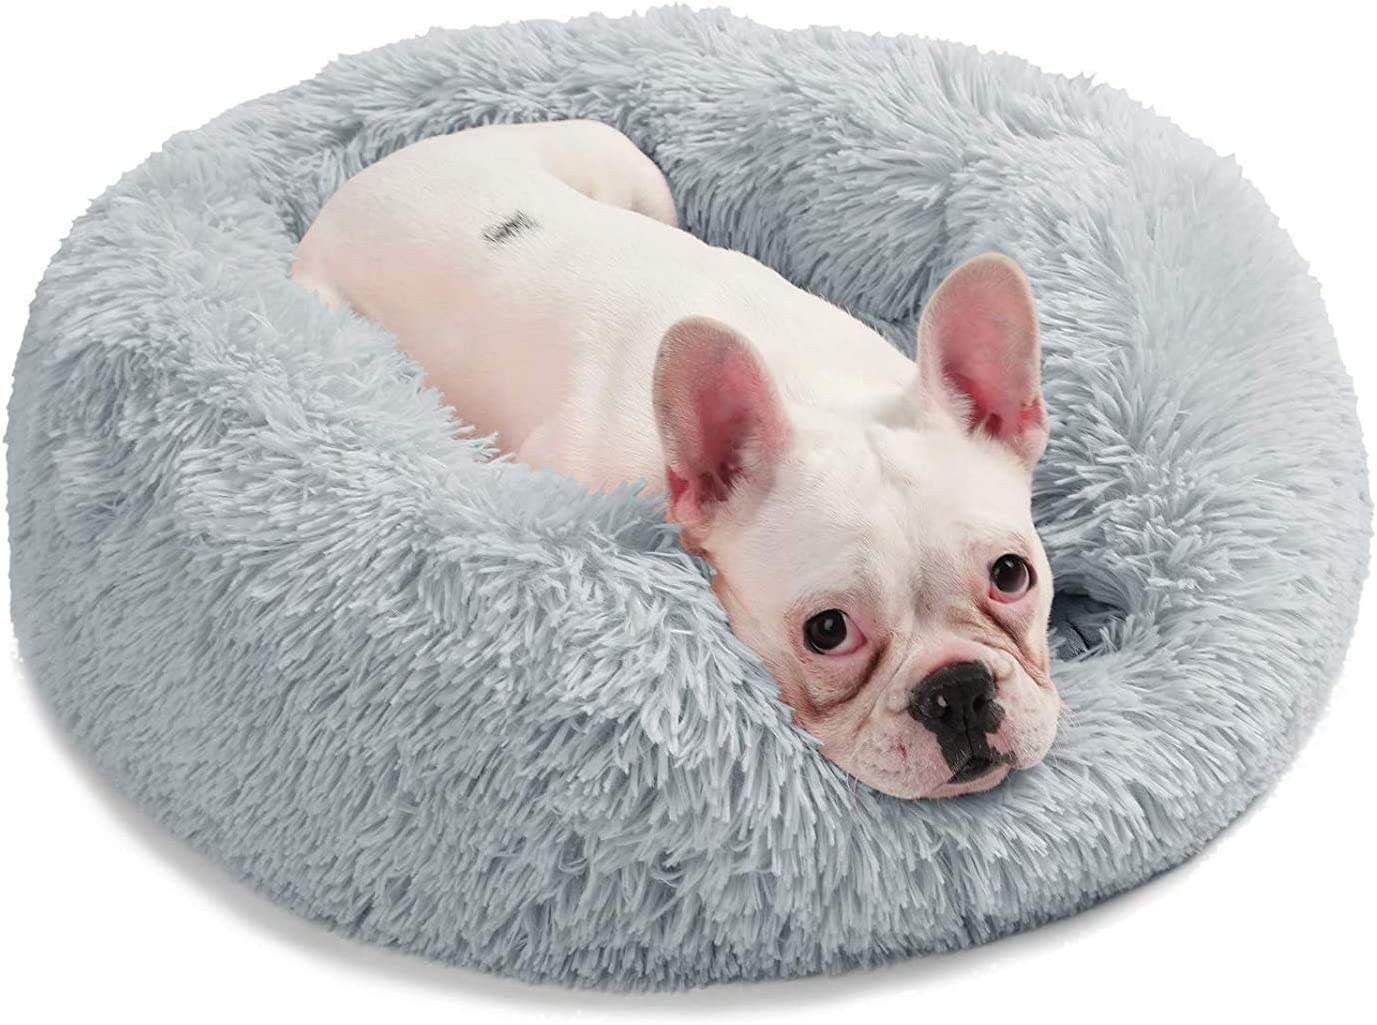 DOG BED Round for Small and Medium Dogs Cats,Faux Fur Donut Cuddler, Bolster Pet Bed Sofa, Extra Plush Dog Pillow Couch, Machine Washable Pet Bed, Orthopedic Relief,A,L70CM